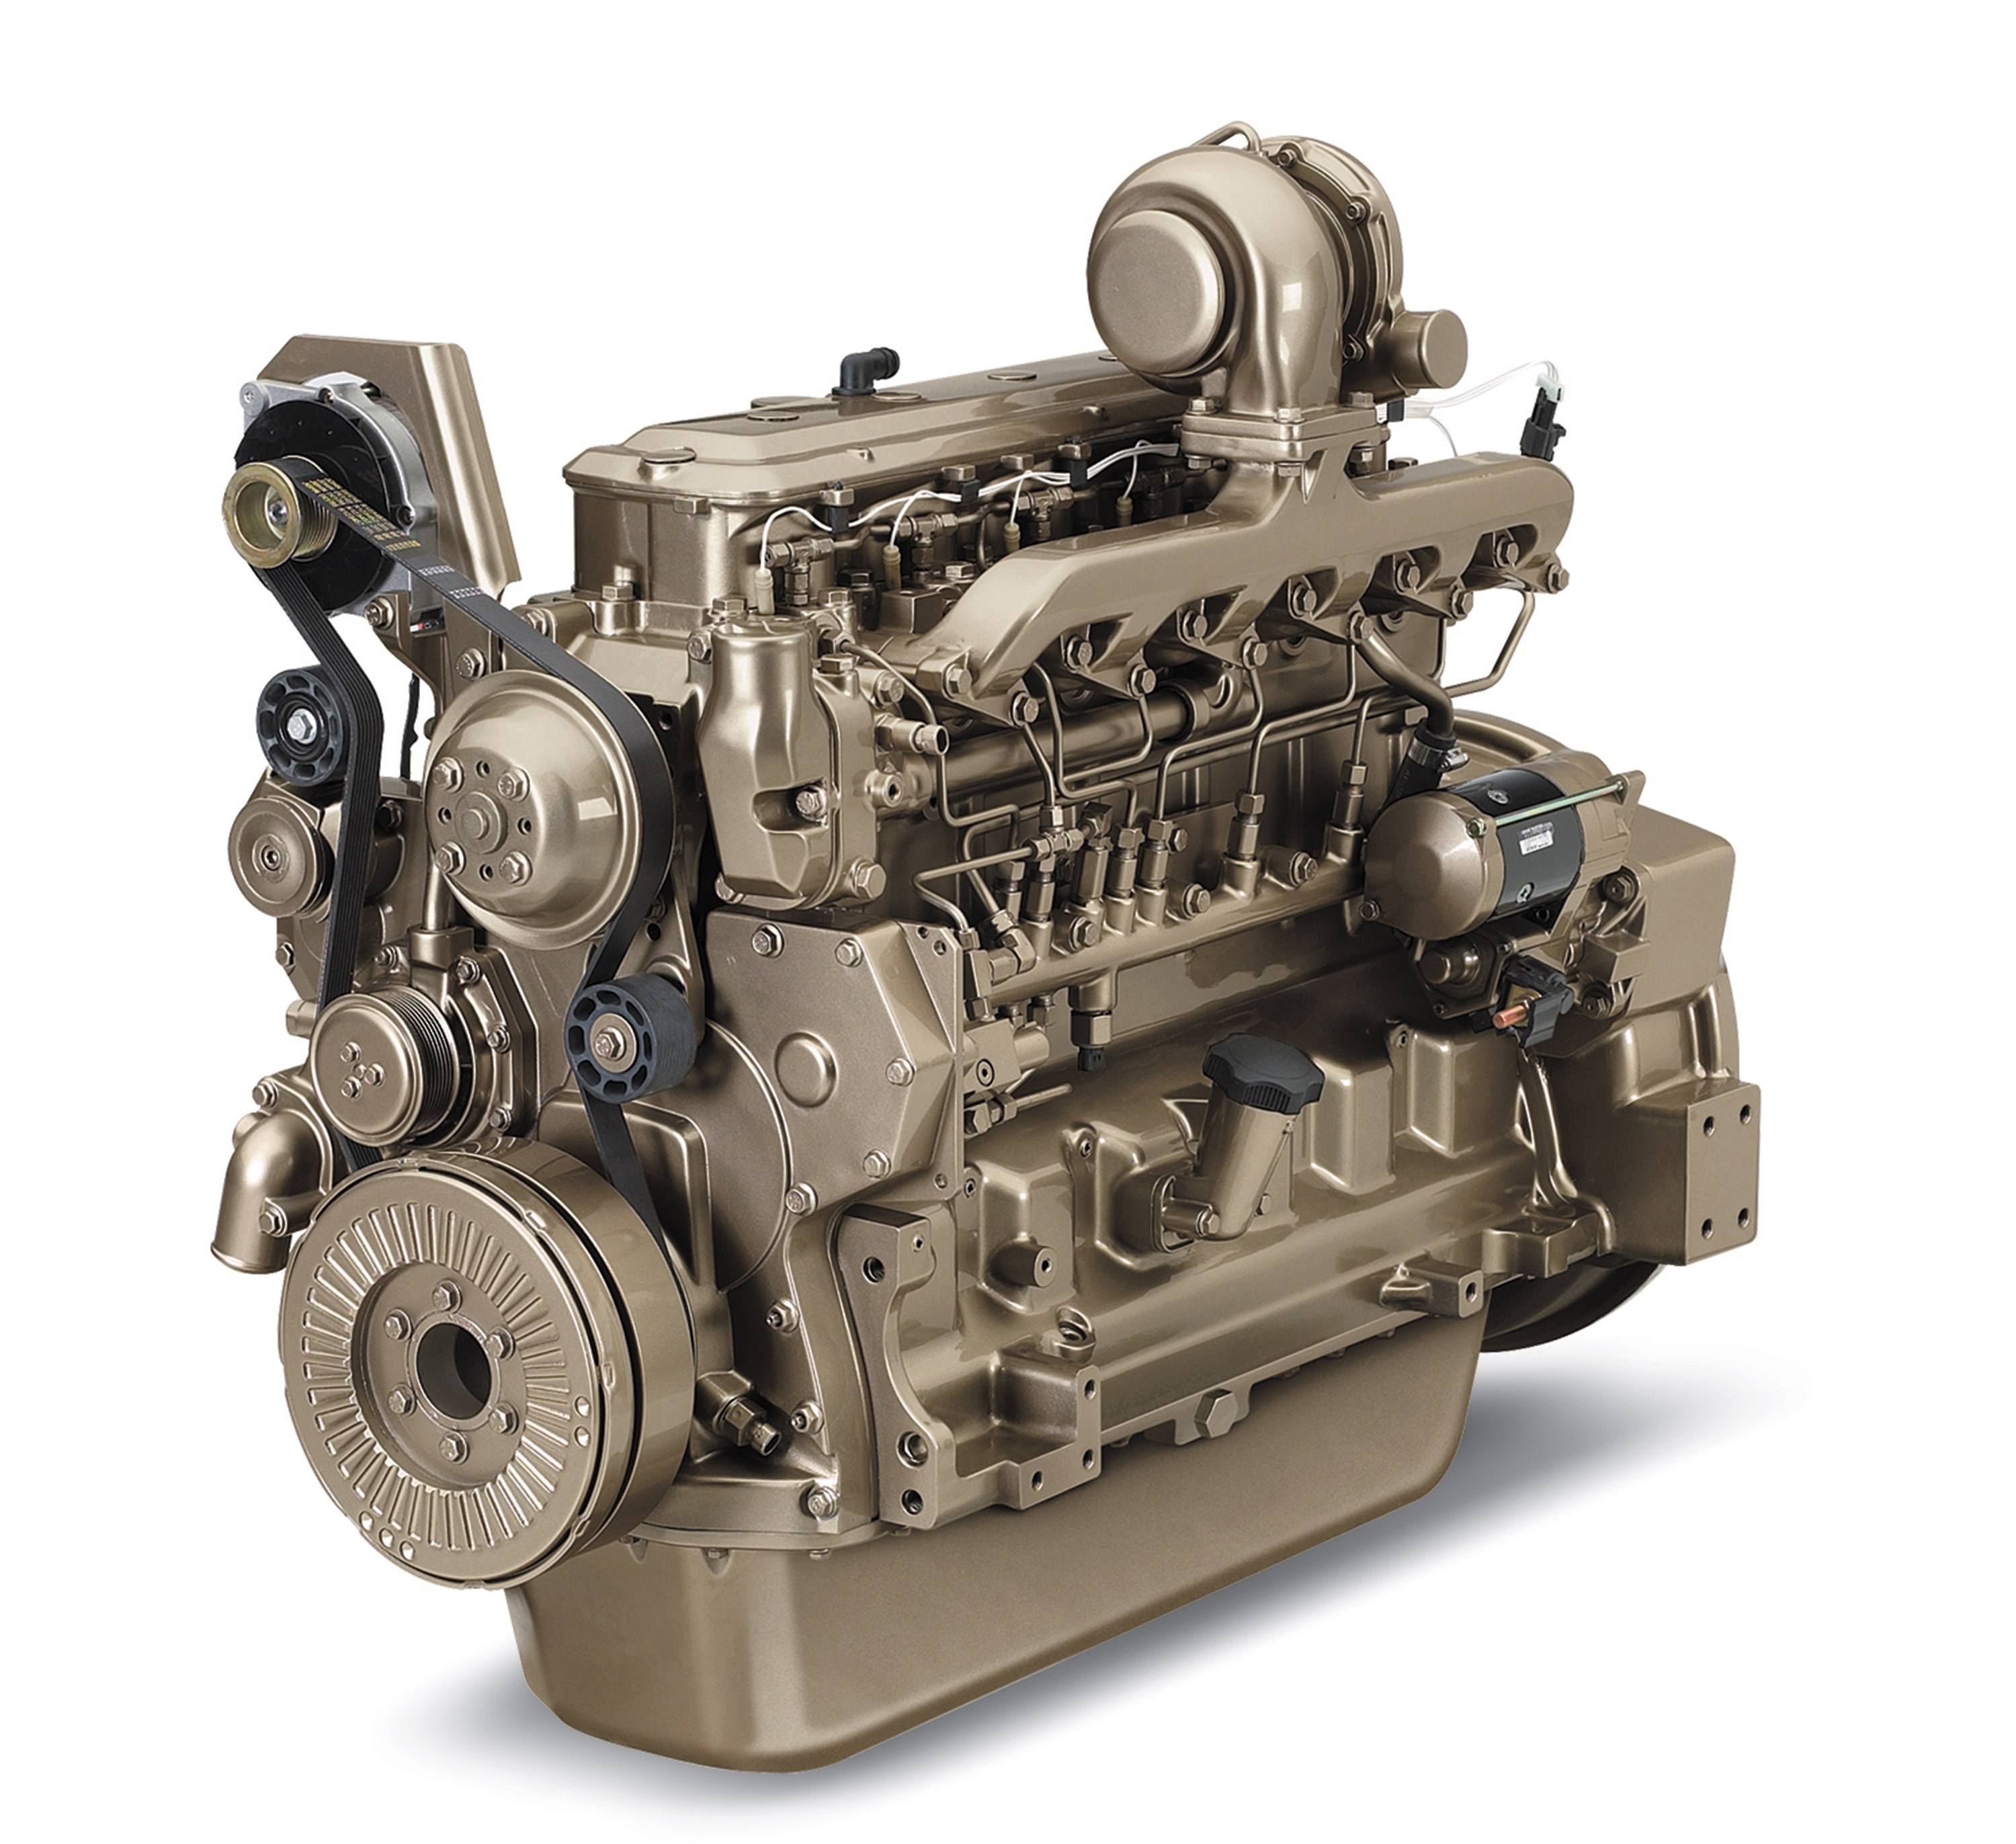 John Deere Engines : John deere industrial engines parts service melton